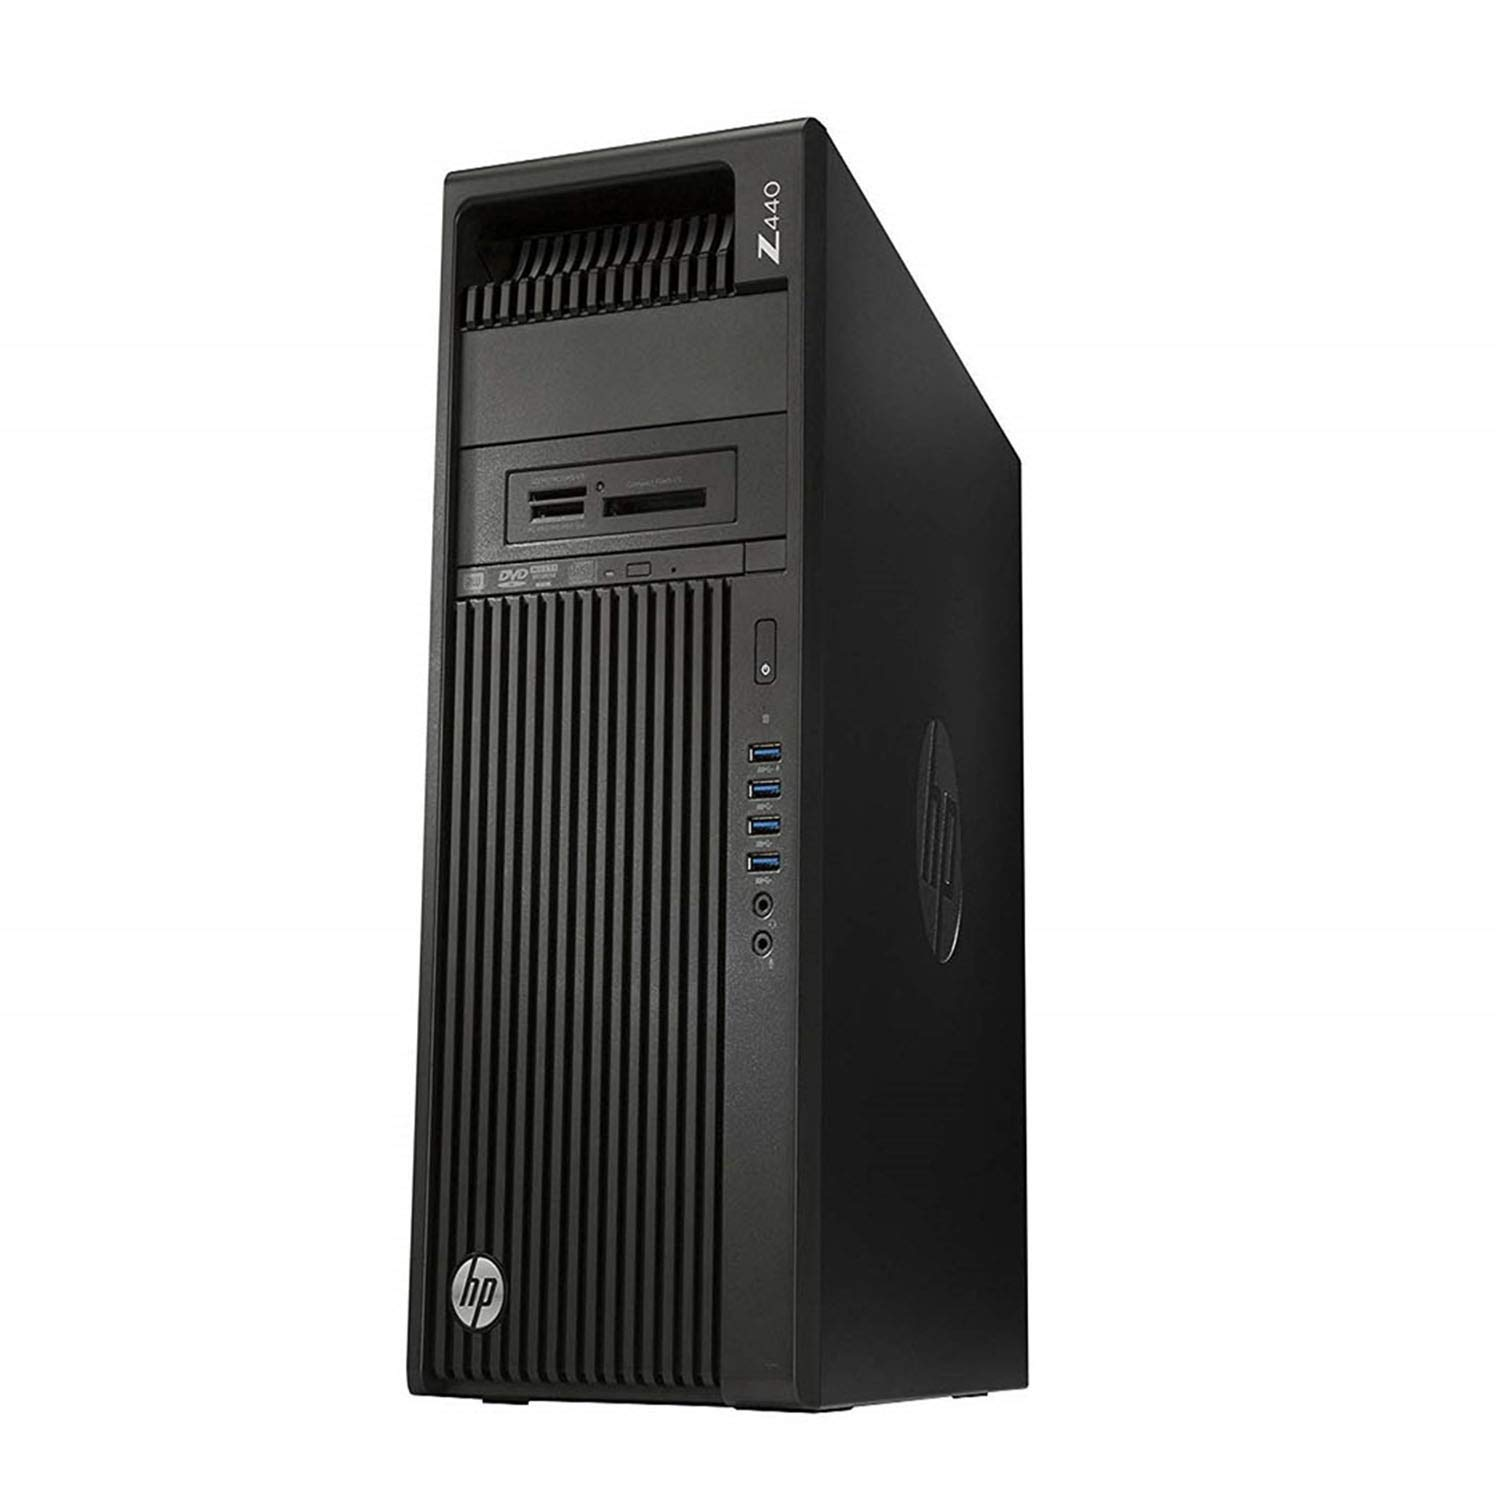 HP Z440 Premium School and Business Tower Workstation Desktop PC (Intel Xeon E5-1603V4 Quad-Core, 64GB RAM, 512GB Sata SSD, DVD, Gigabit Ethernet, Win 10 Pro) B07HPG3VM6  4TB SSD 4TB SSD|128GB RAM | Win 7 Pro